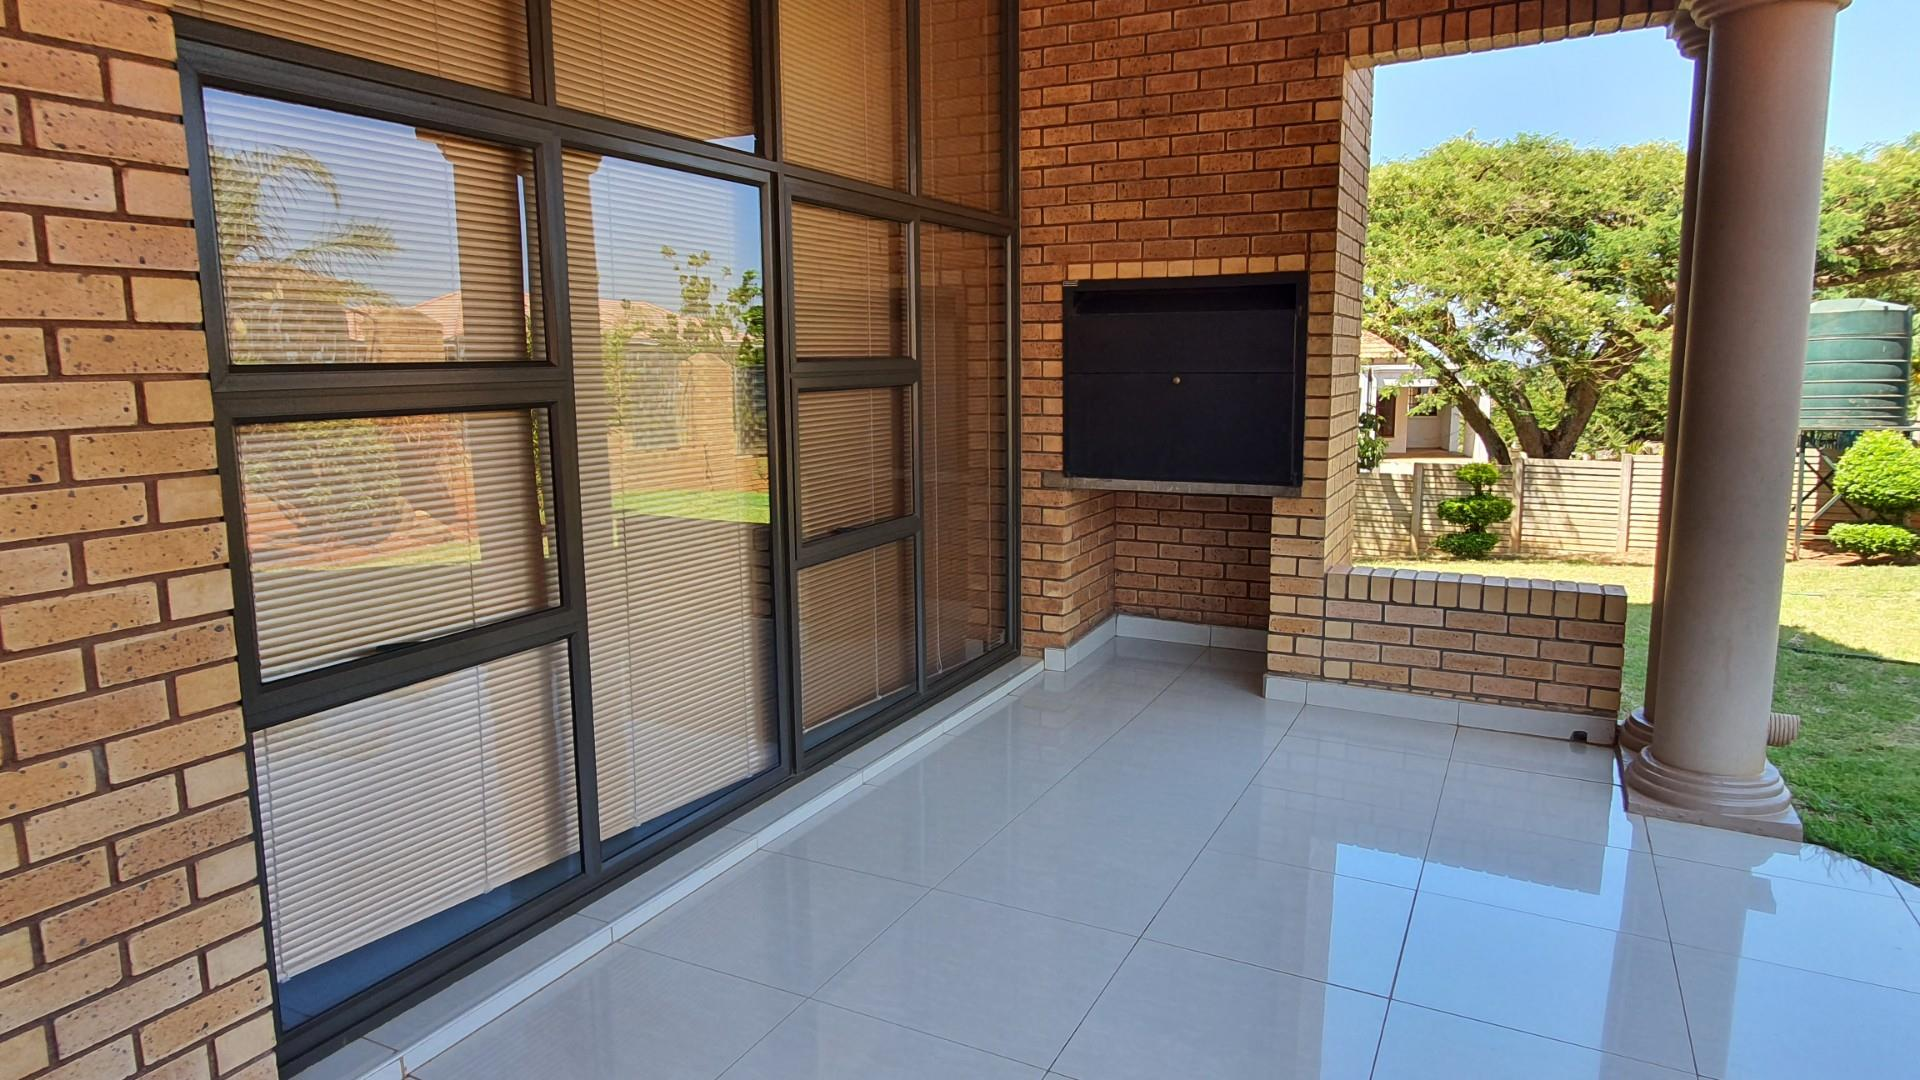 7 Bedroom House For Sale in Louis Trichardt